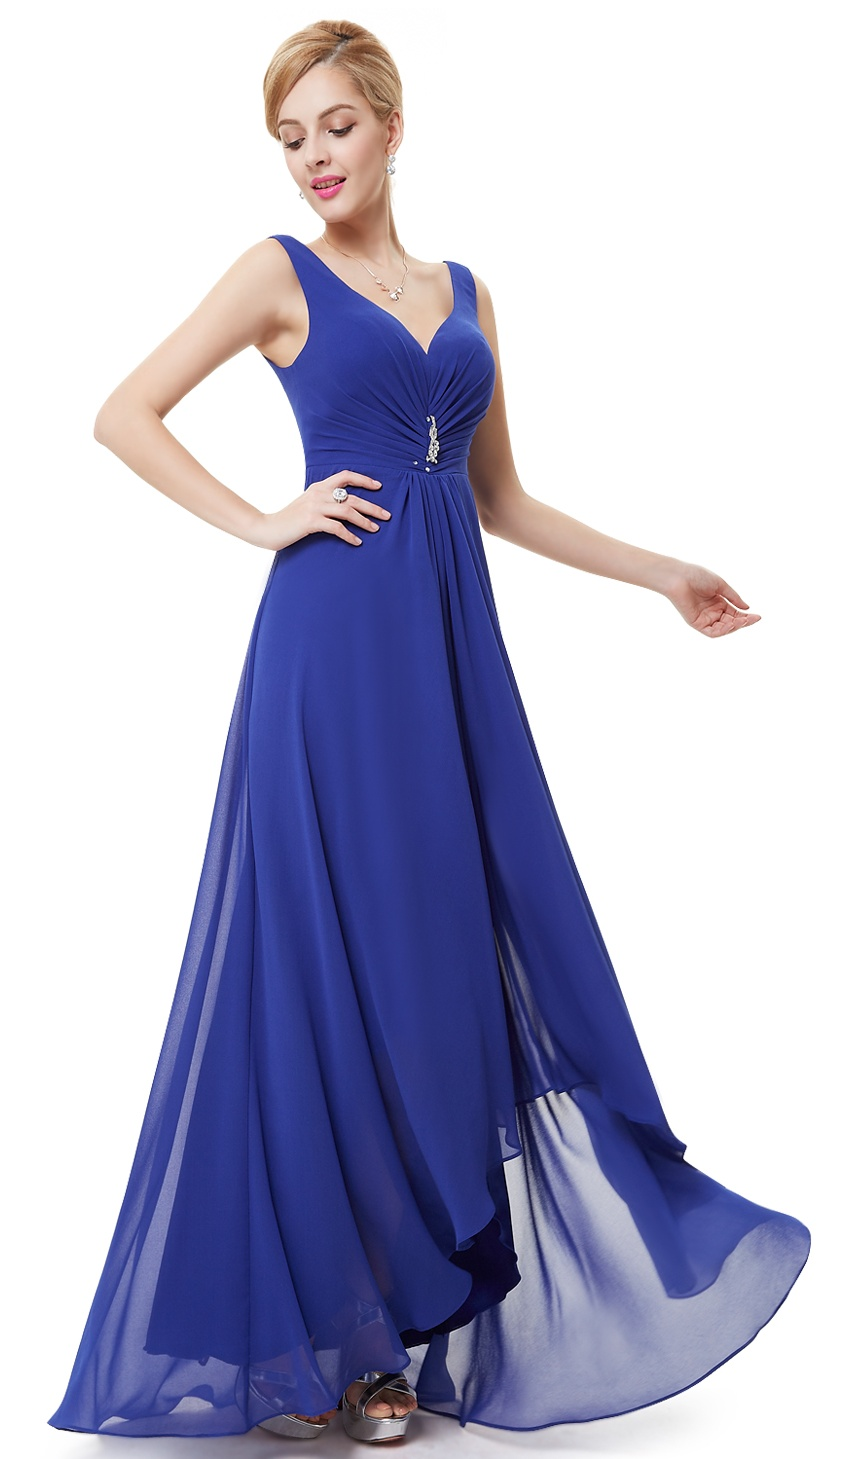 b7cb1fb6b23 Ever-pretty - Ever-Pretty Womens Classic Full-Length High Low Ruches Bust  Black Tie Summer Beach Wedding Bridal Shower Party Dresses for Women 09983  Purple ...